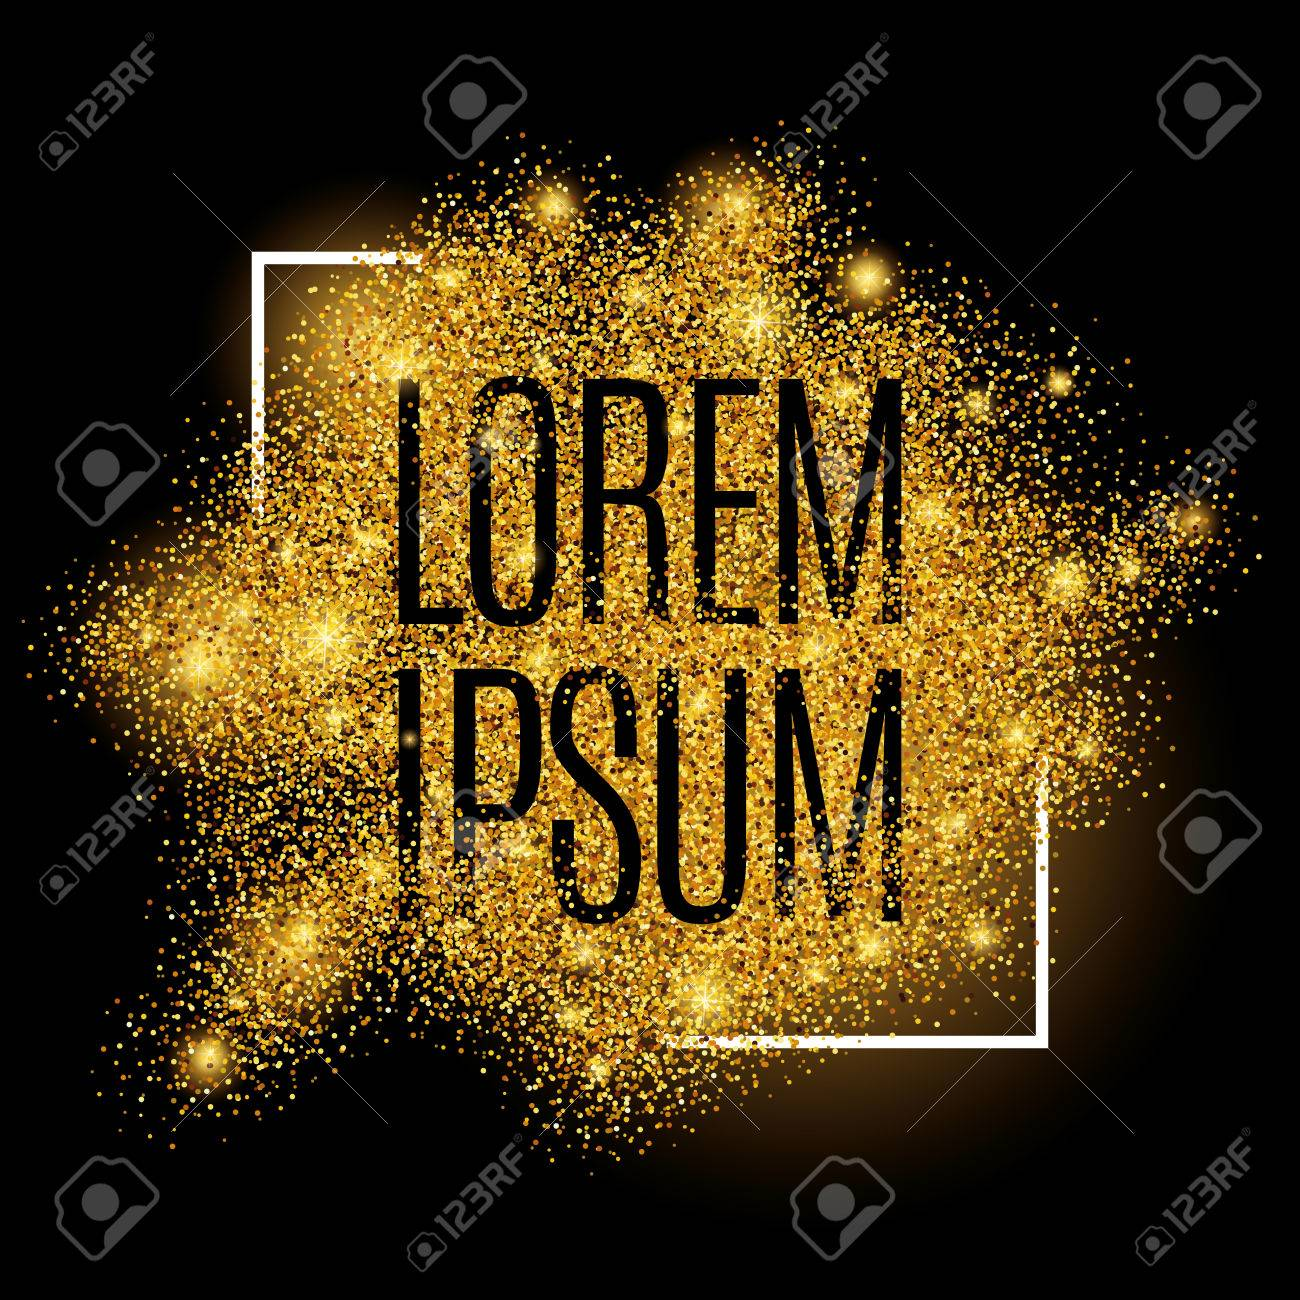 Gold background for poster, shopping, for sale sign, discount, marketing, selling, web, header. Abstract golden background for text, type, quote. Gold blur background - 52579351